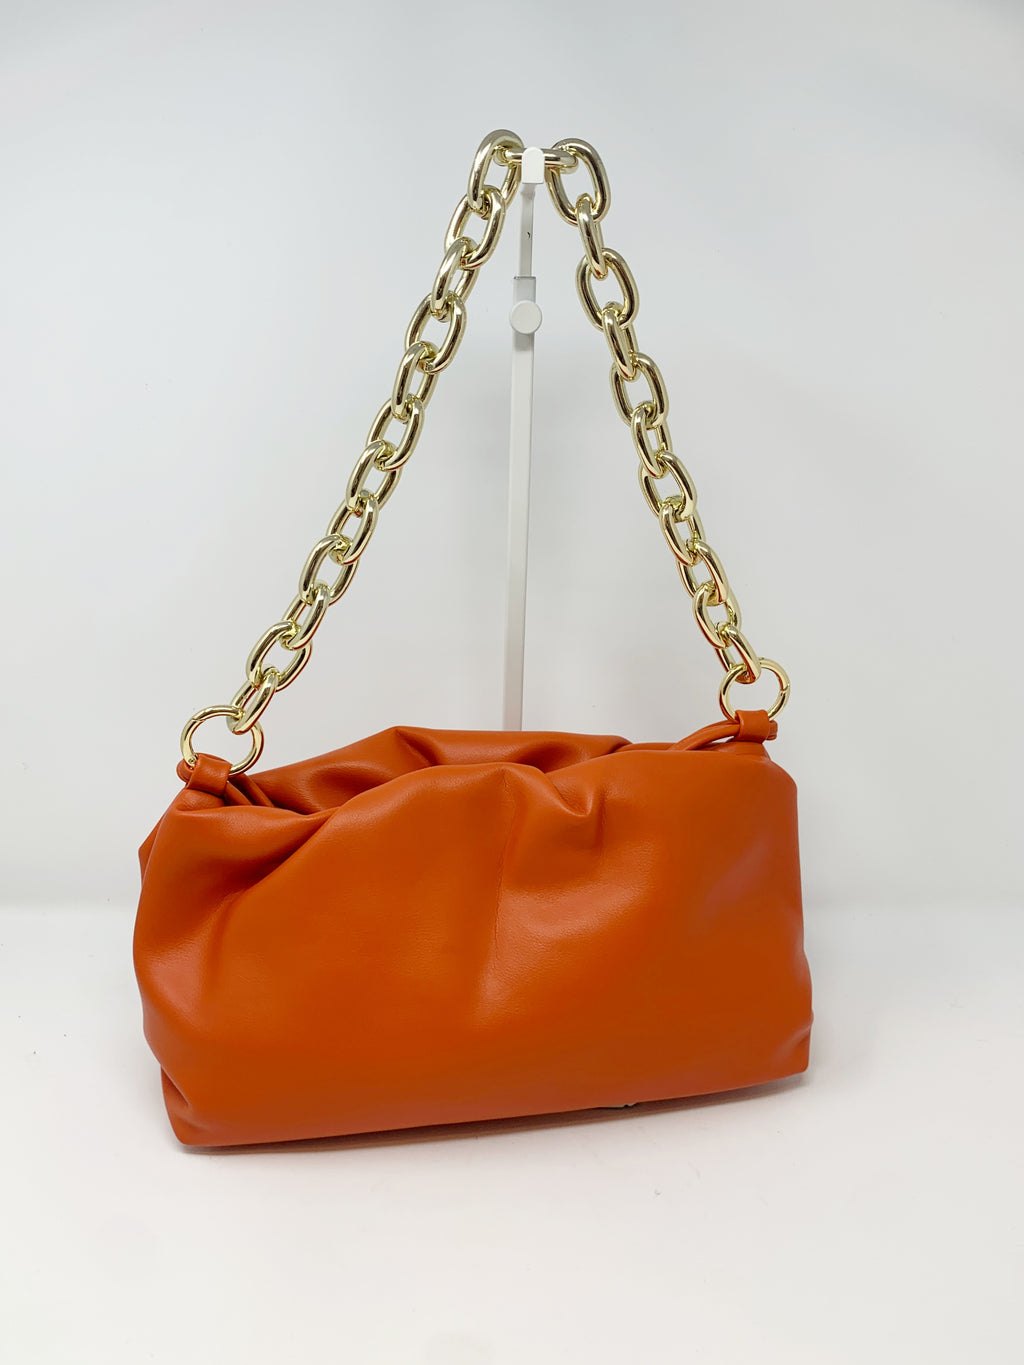 Pouch Bag with Chunky Chain and Crossbody Strap in Blaze Orange